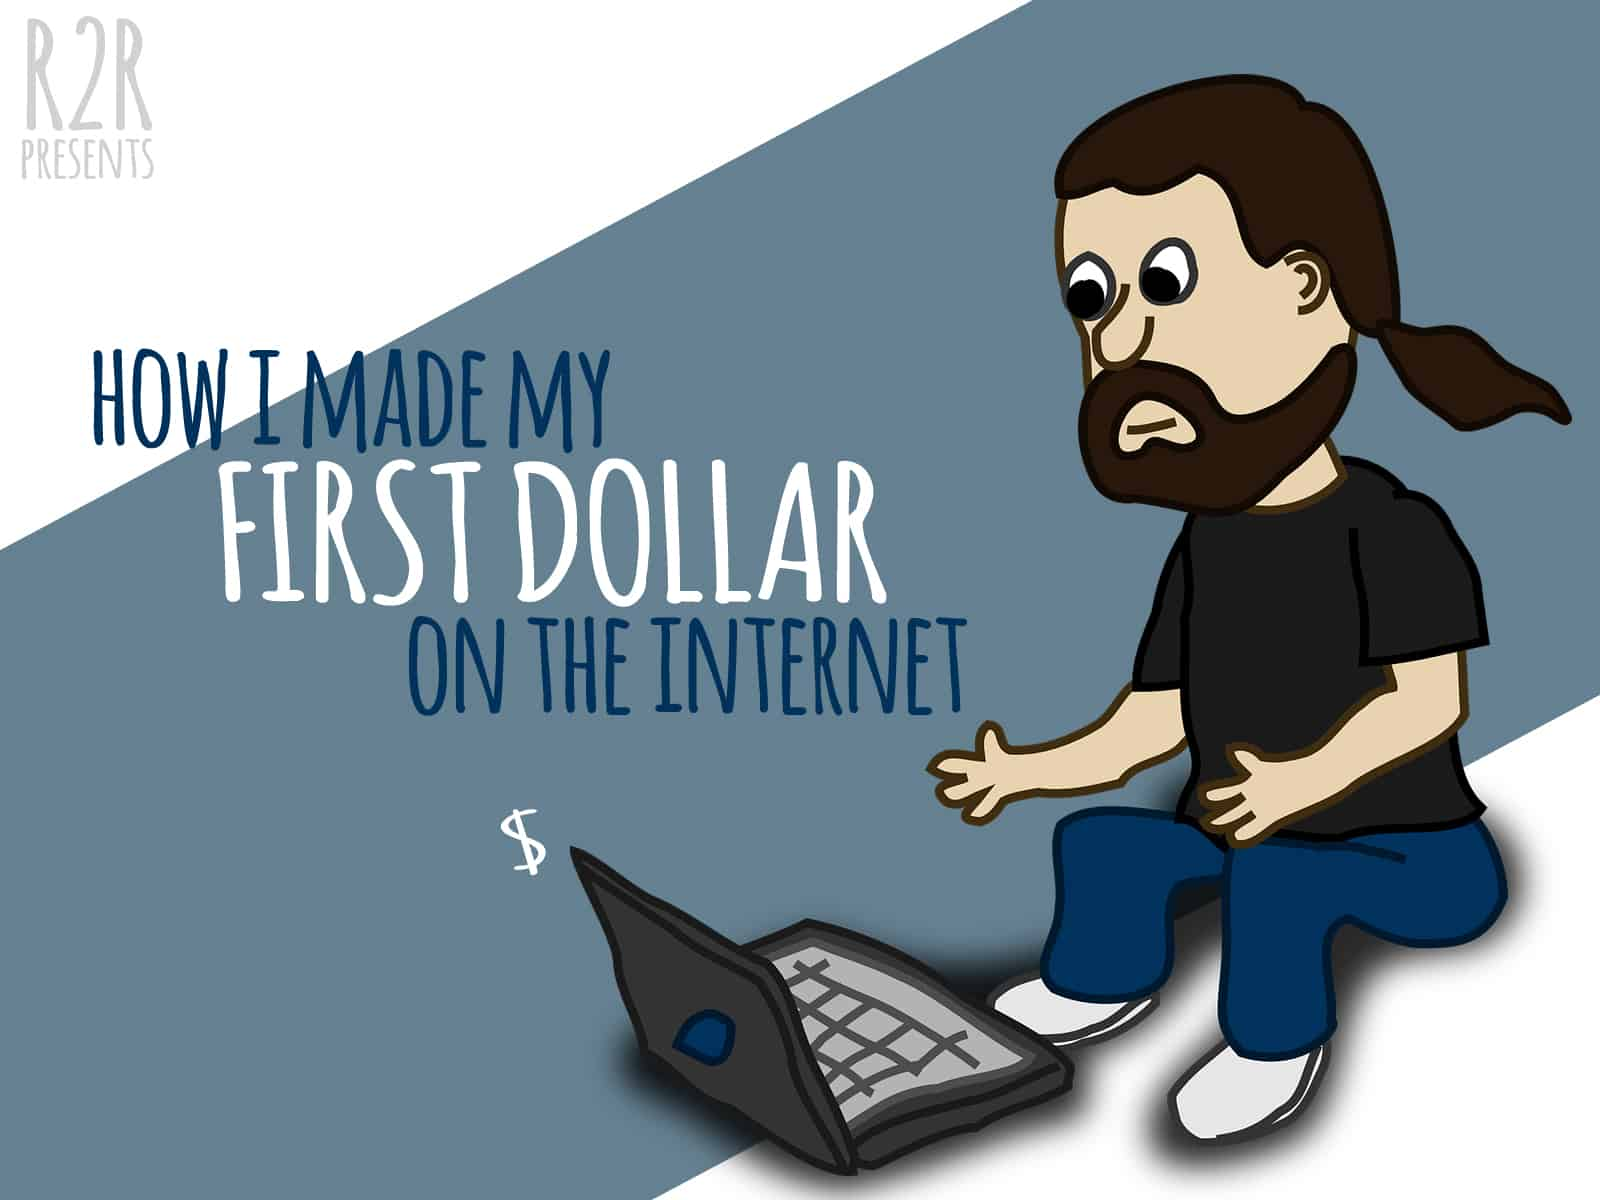 How I made my first dollar on the internet